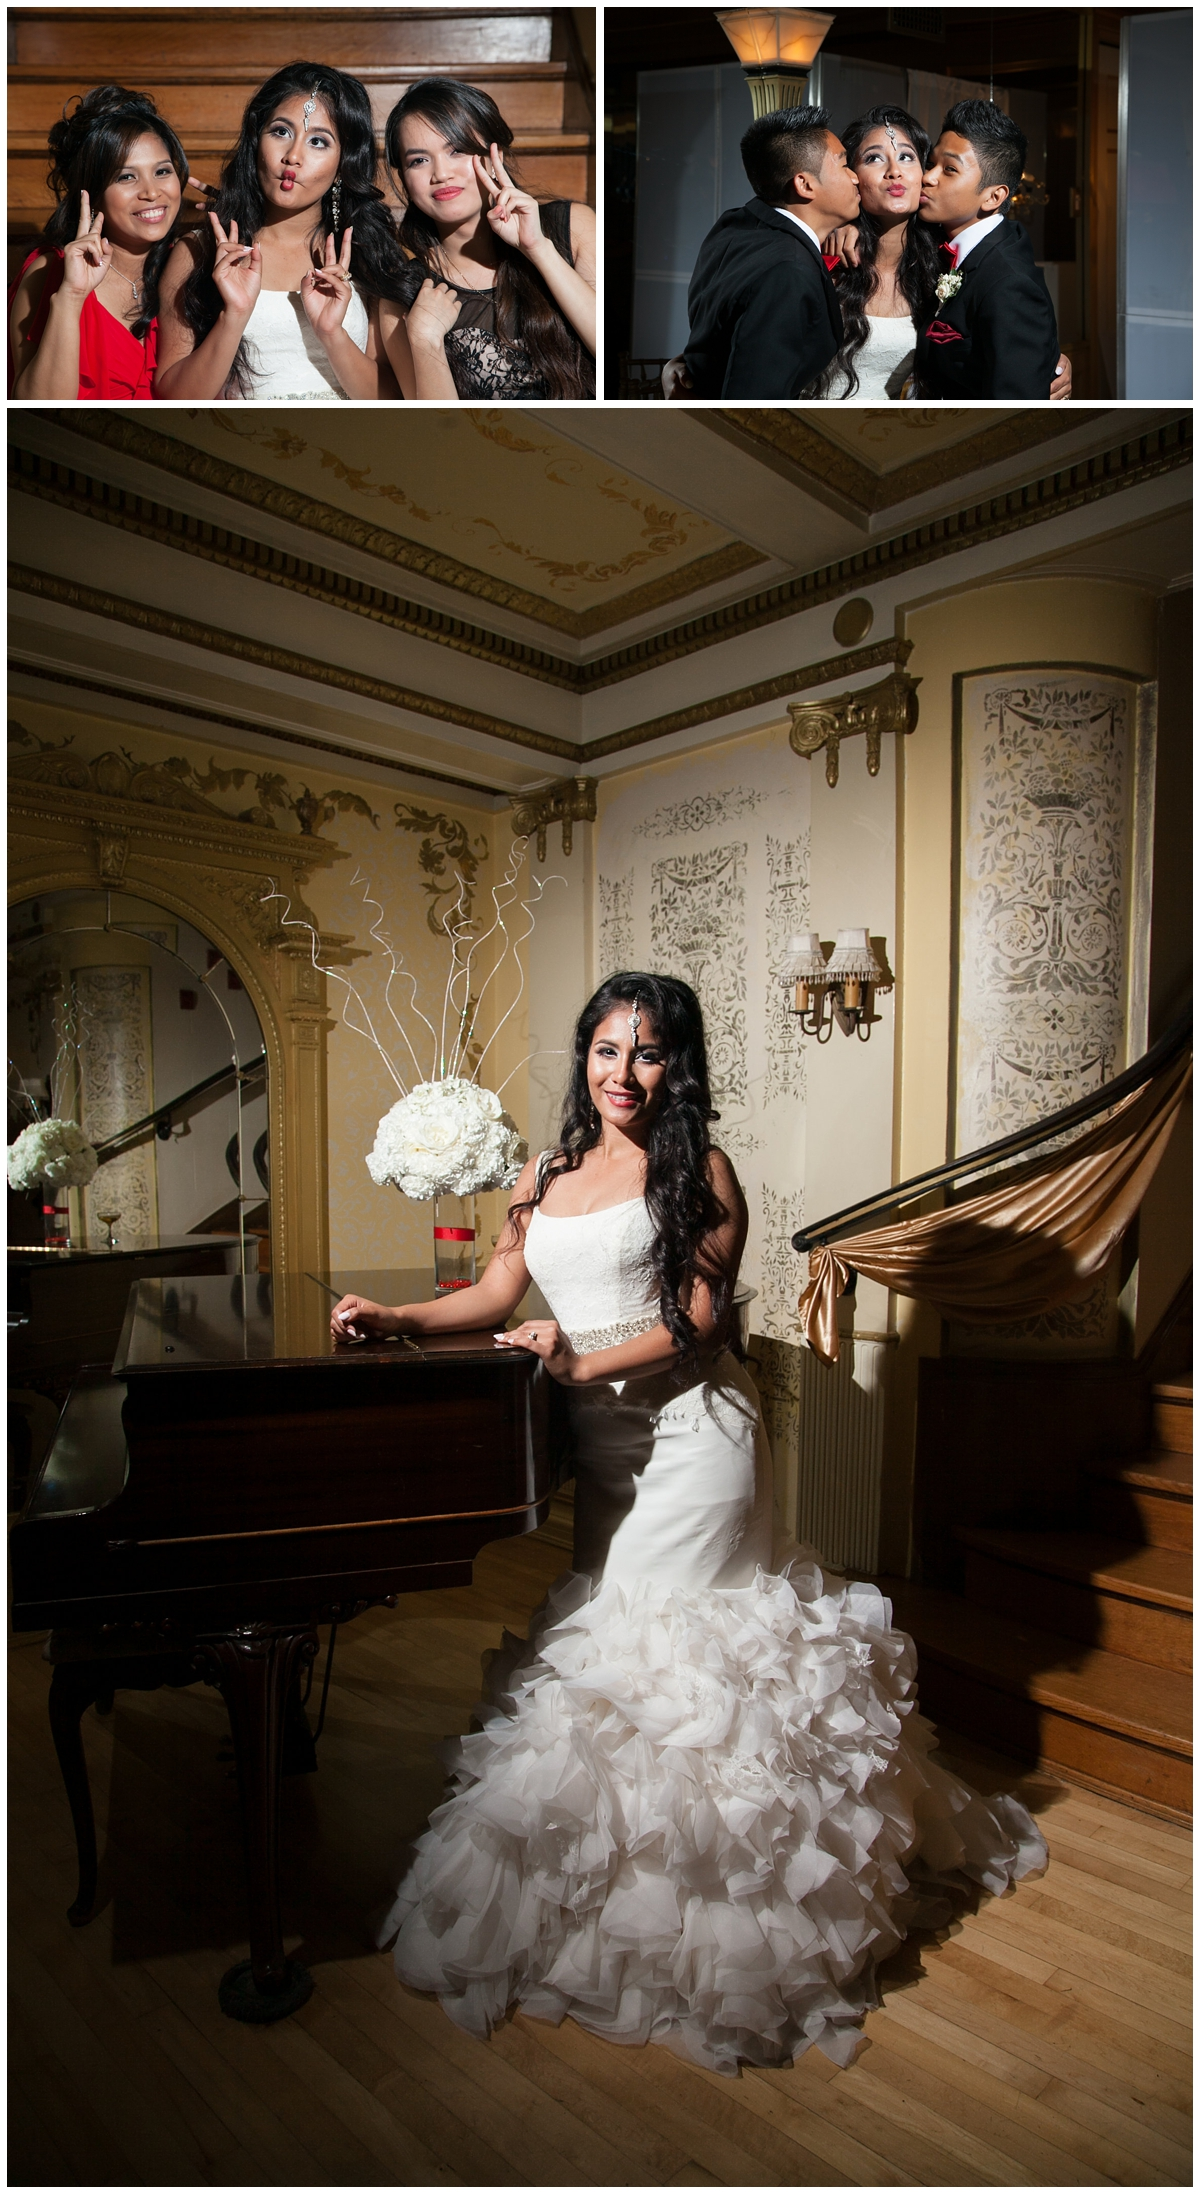 Grand Island Mansion Wedding Photography, Fusion Moments Media, Meo Baaklini